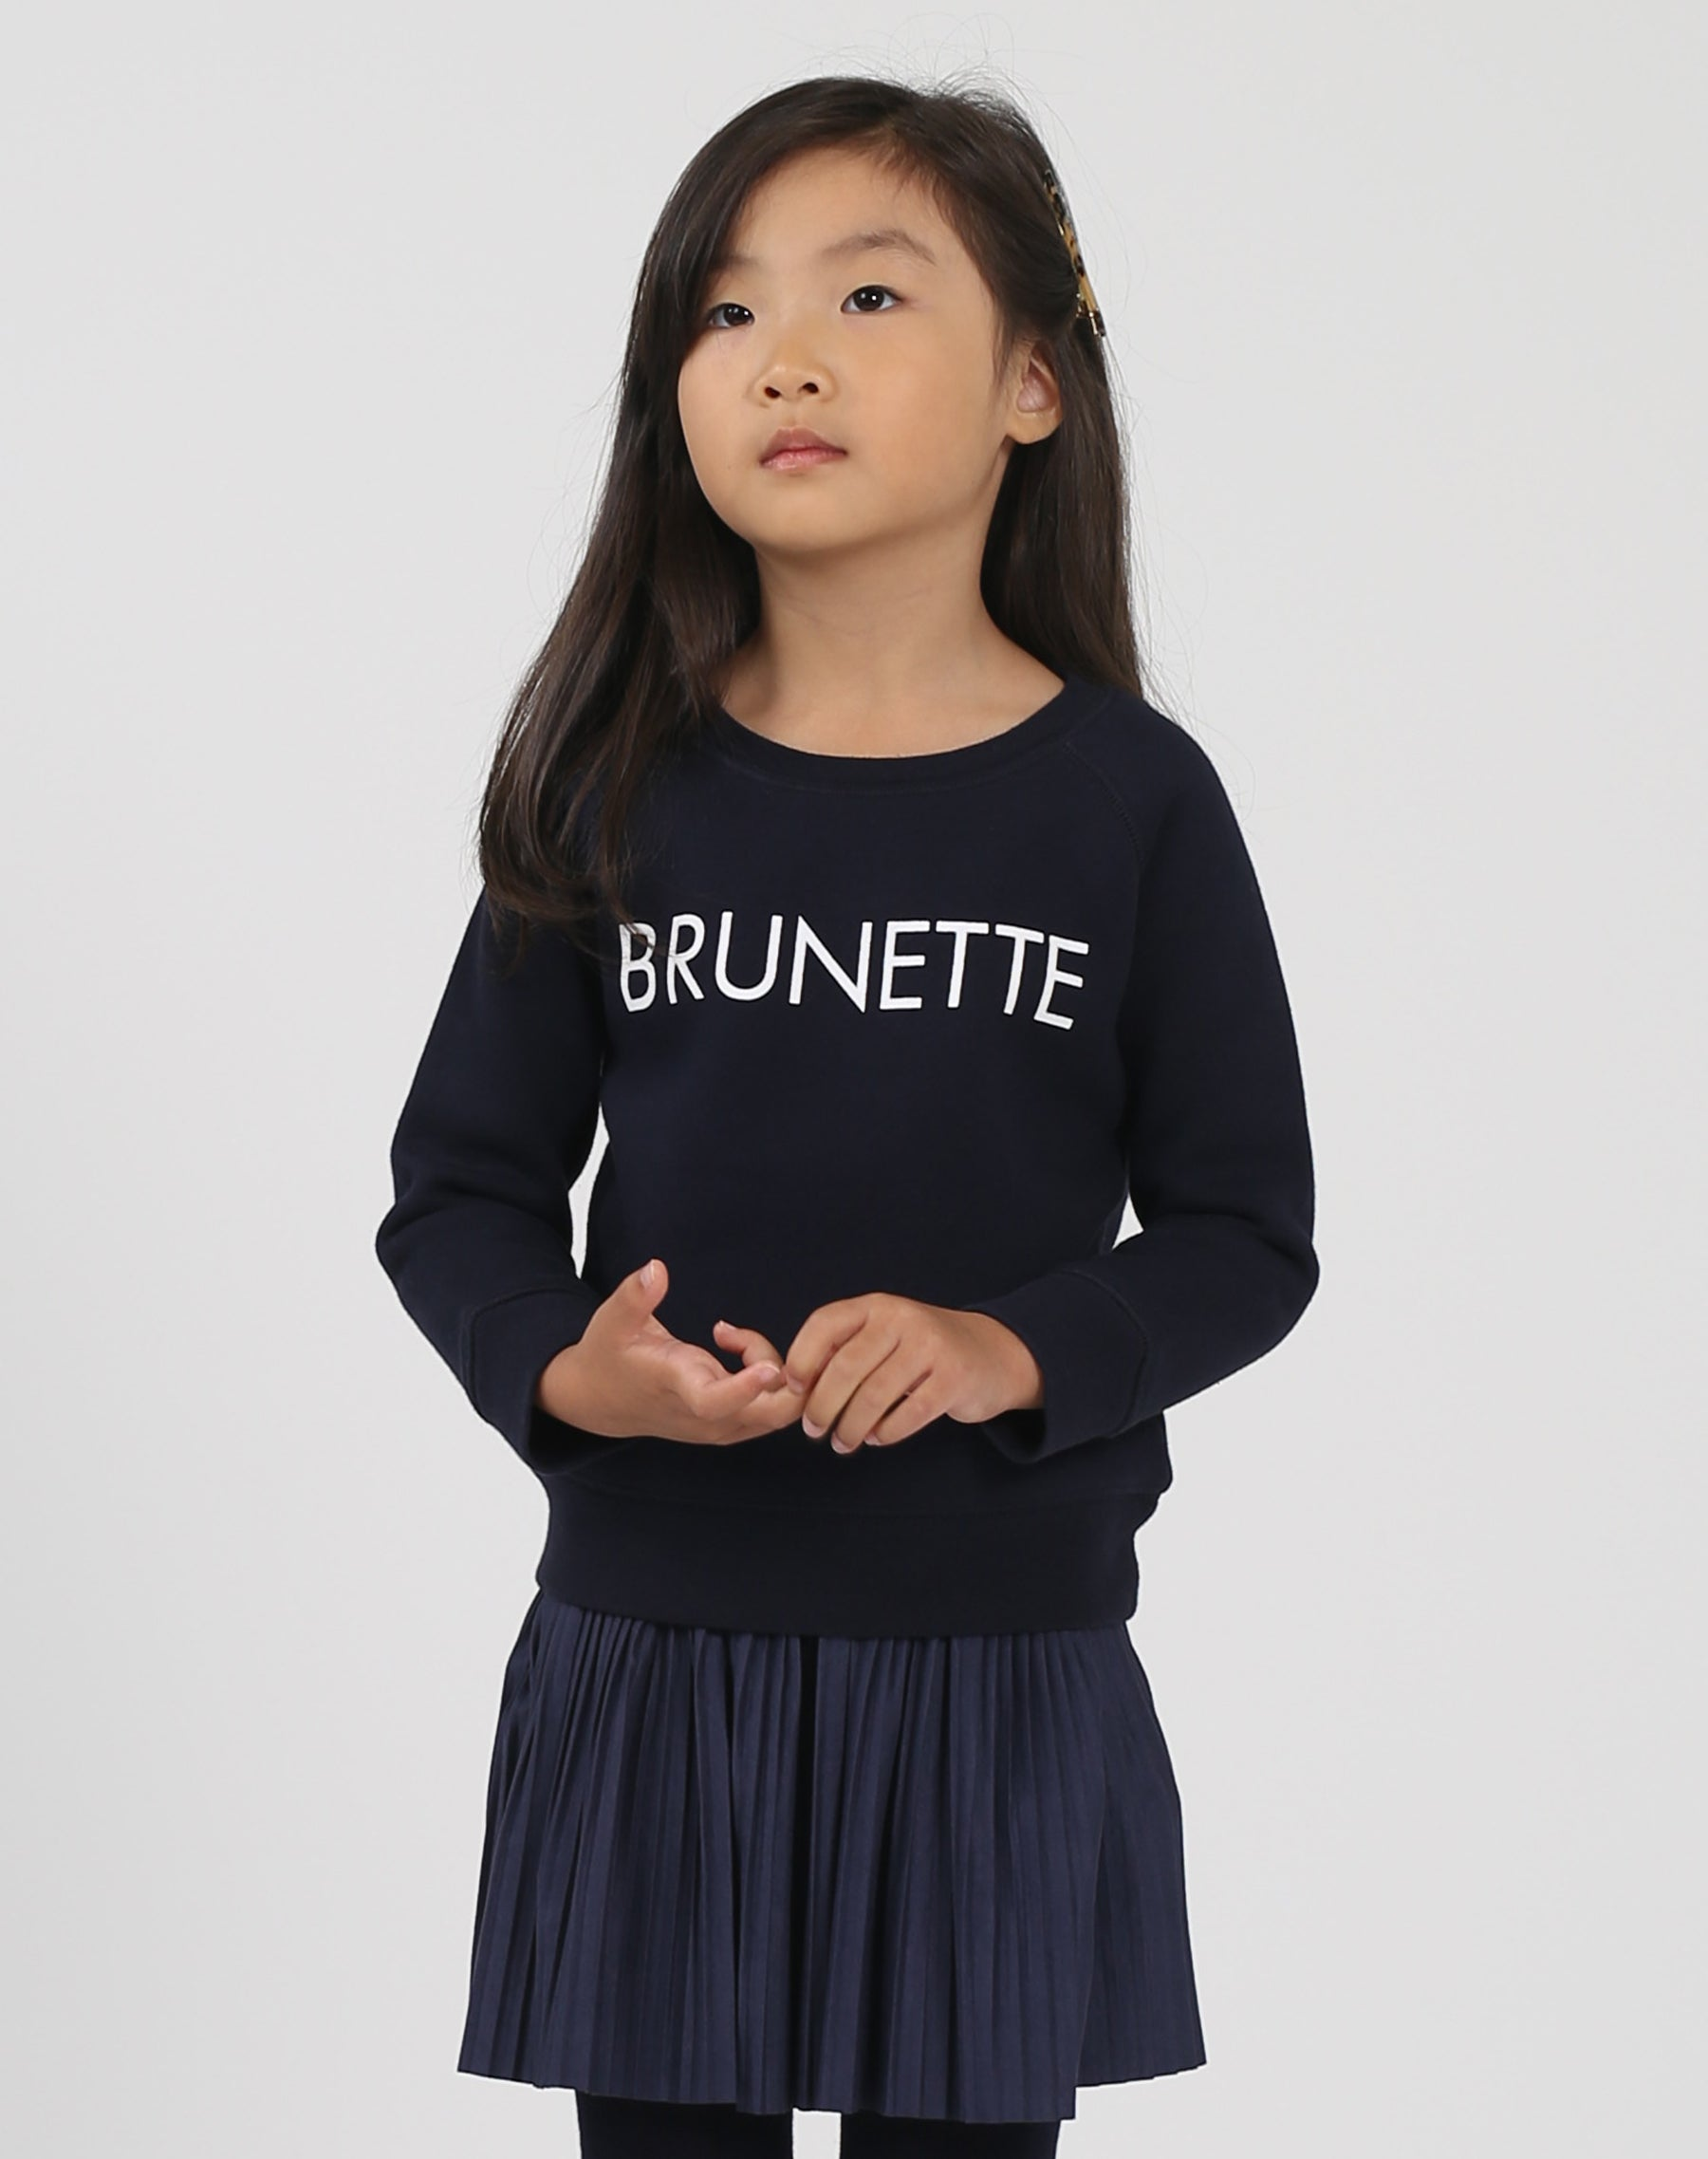 Photo of the Brunette Little Babes classic crew neck sweatshirt in navy by Brunette the Label.